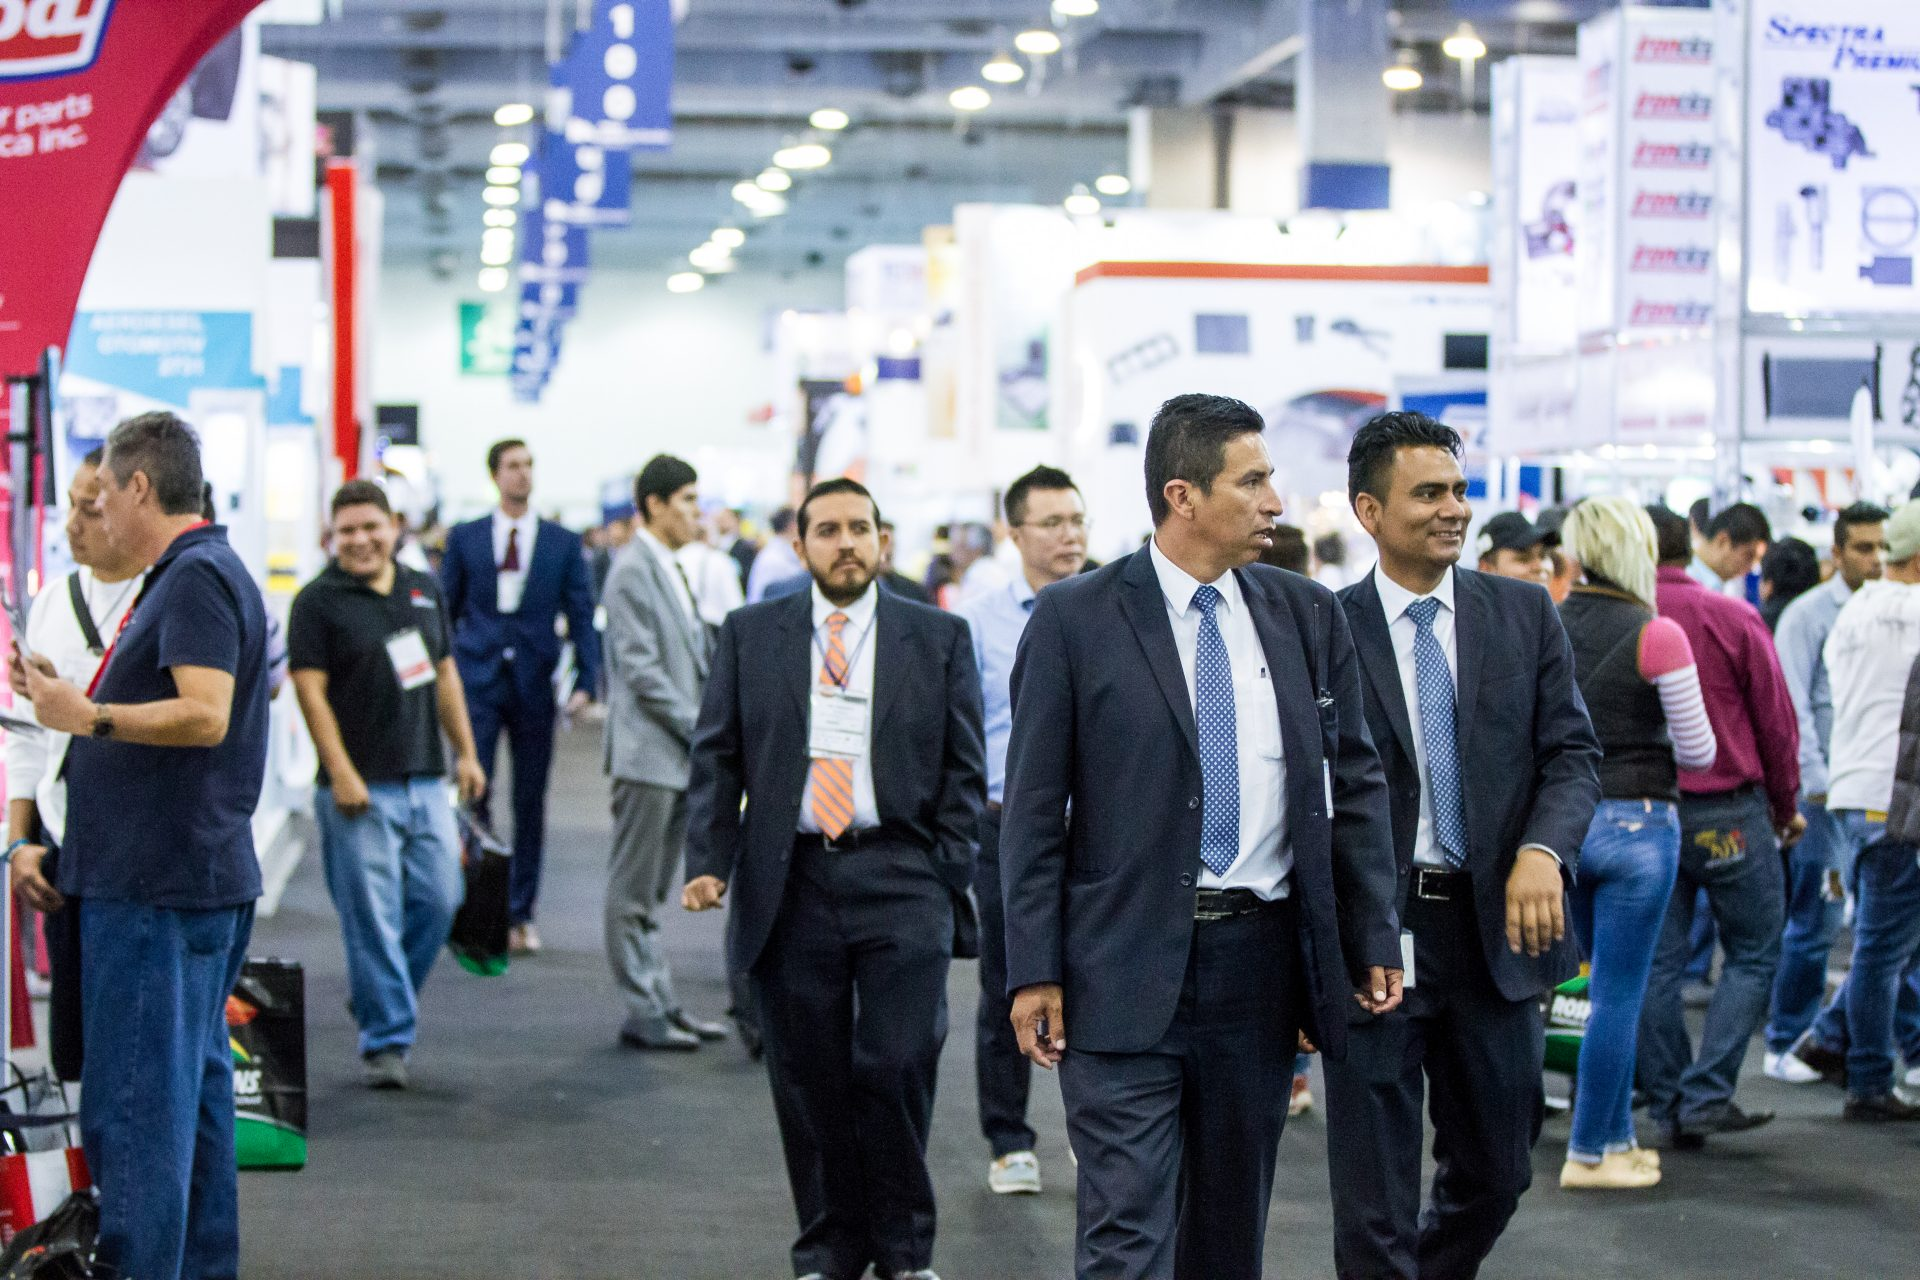 INA PAACE Automechanika Mexico City 2020 - Exhibitor Information